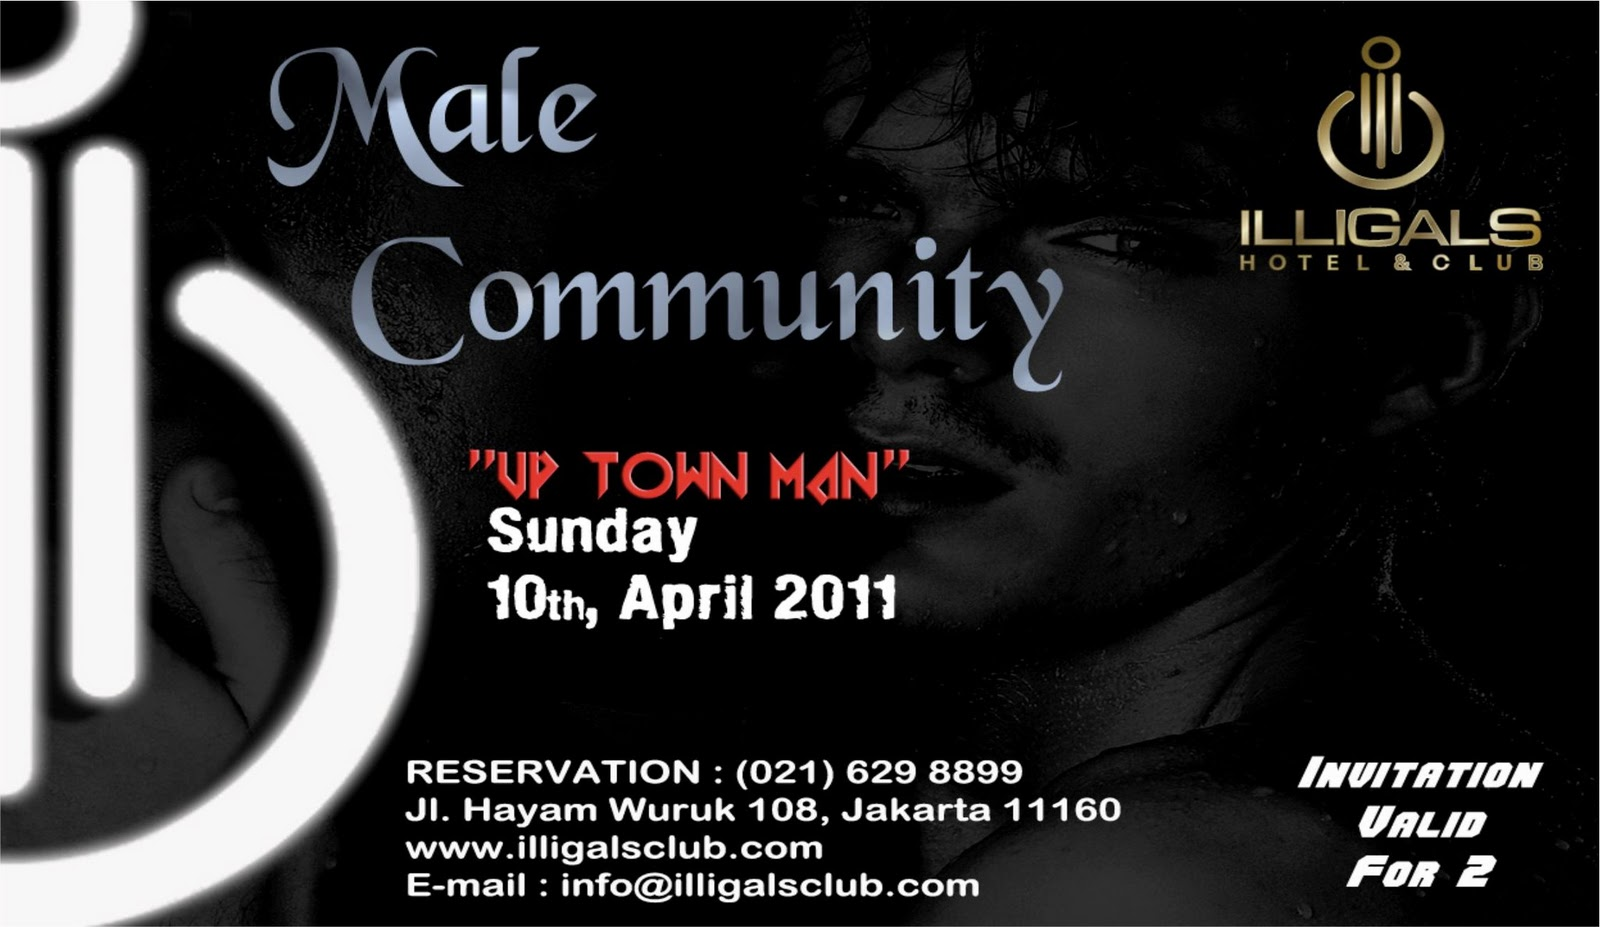 I saw that Illigals organizes some gay events on Sundays (see flyer below).